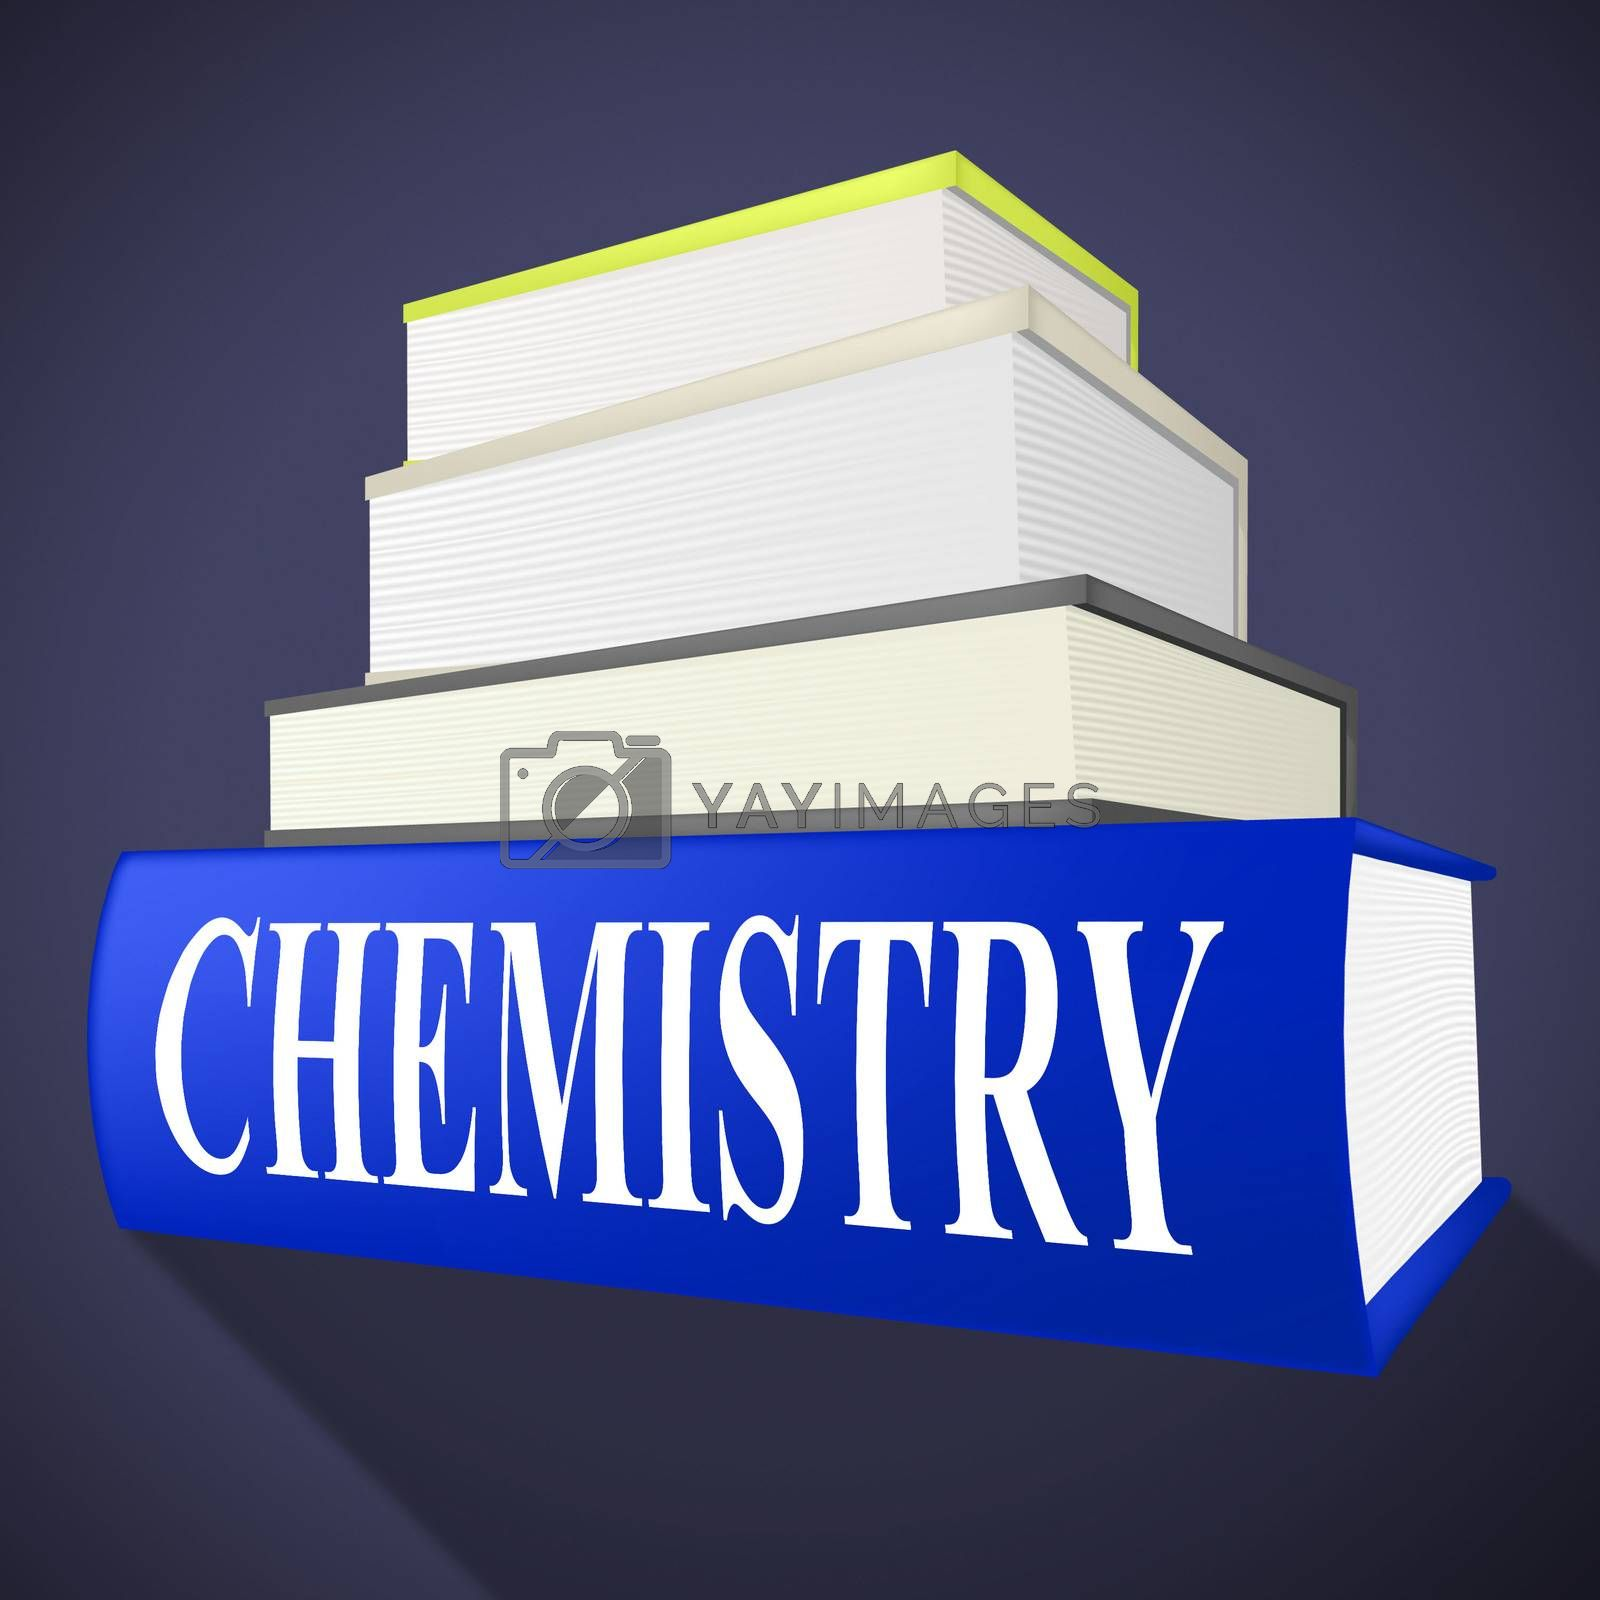 Chemistry Books Indicates Fiction Research And Formula by stuartmiles